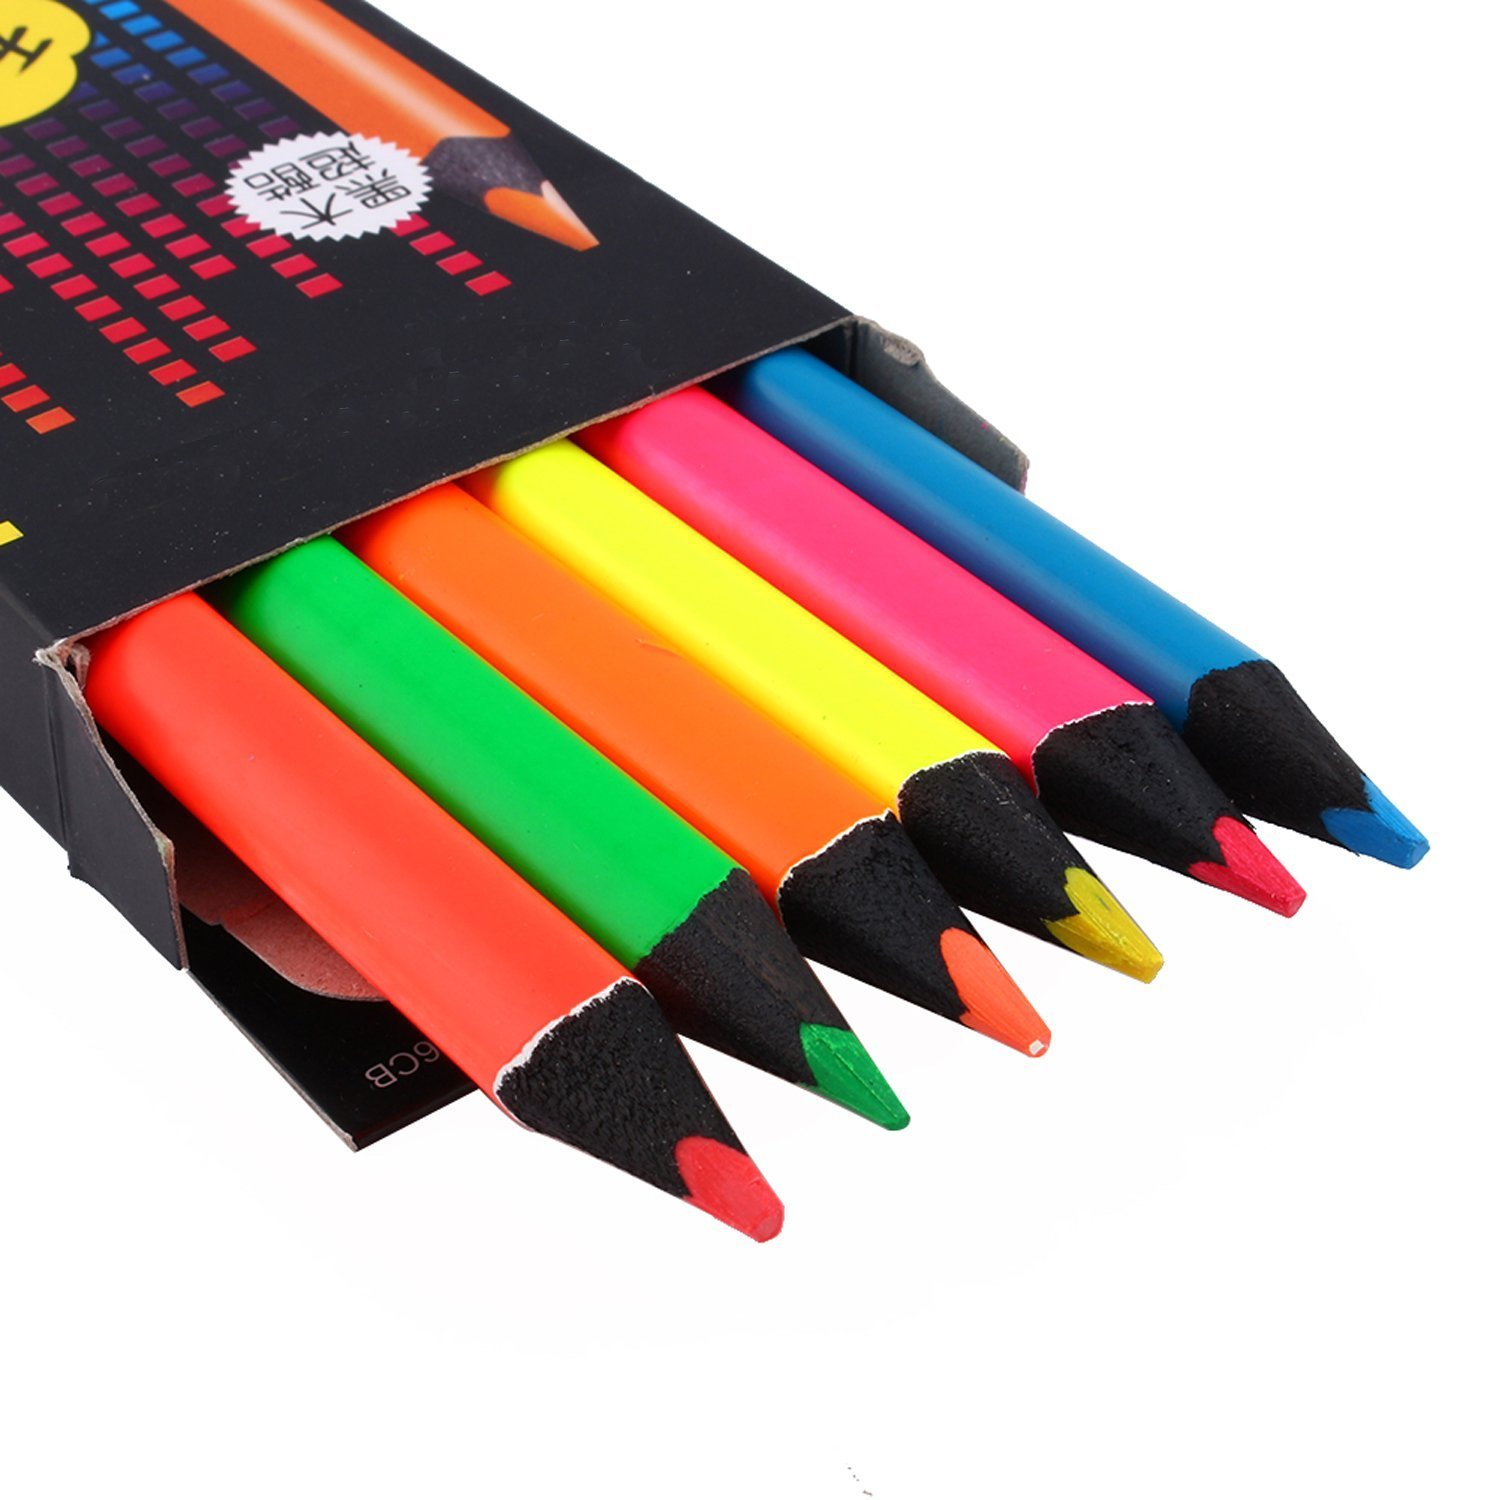 ZJchao Fluorescent Colored pencils Set//Highlighter Pencil for Writing Sketching Inkjet,paper,copy,fax Perfect for the Classroom and Craft CornerIncludes Sharpener Pack of 6